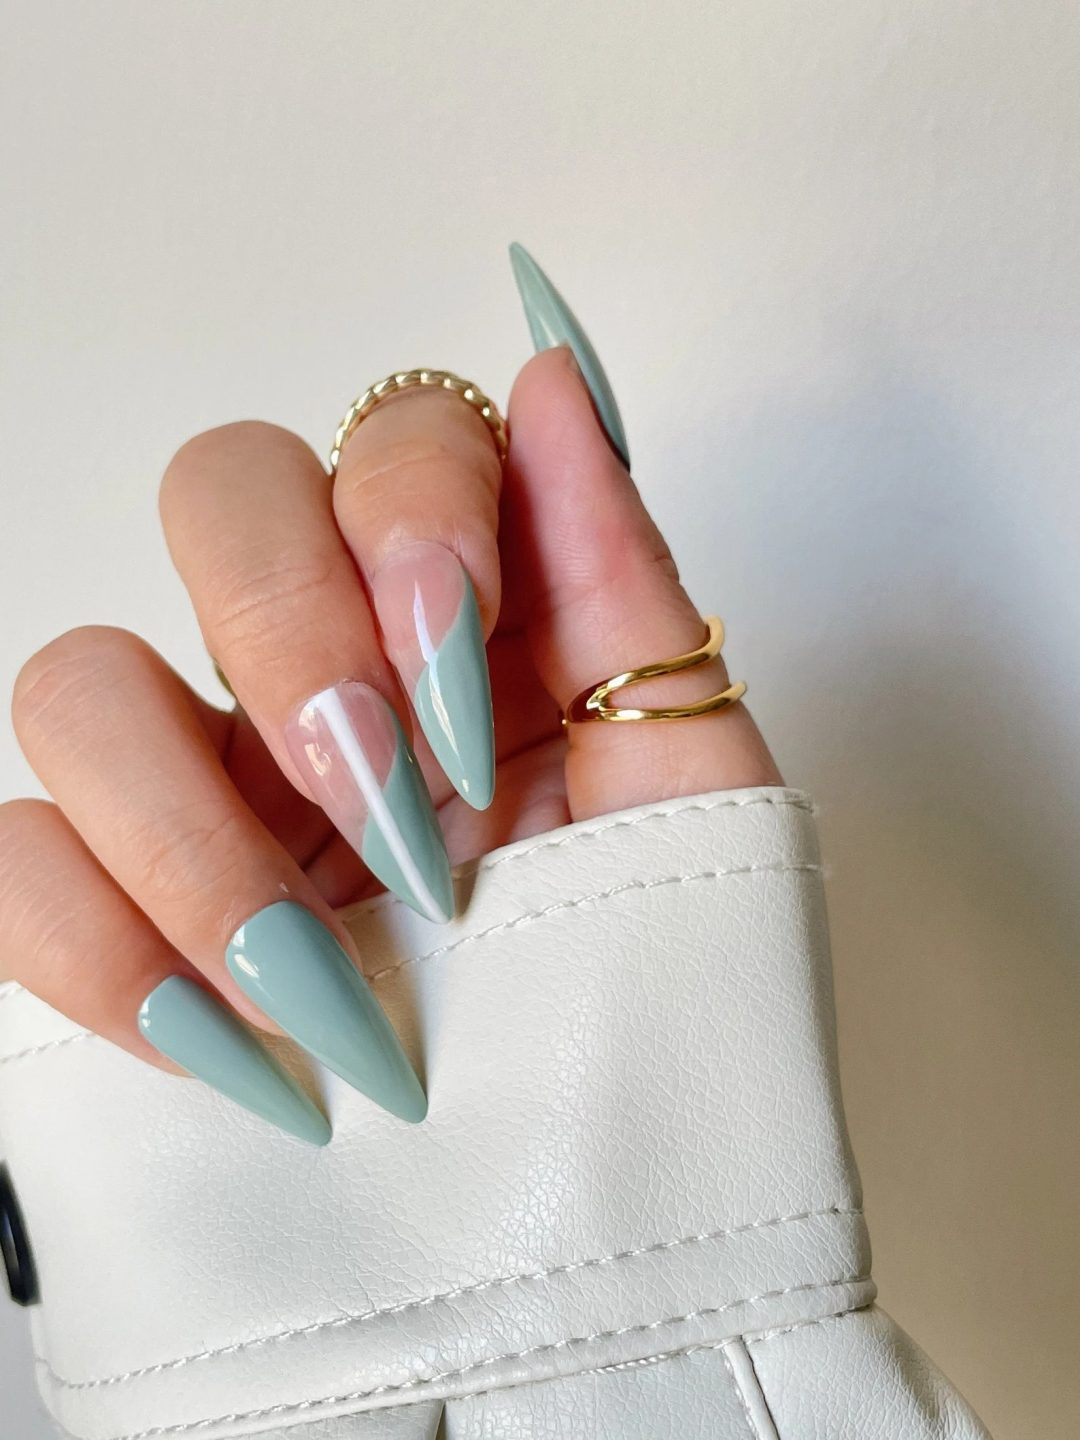 Sage green nails with negative space design